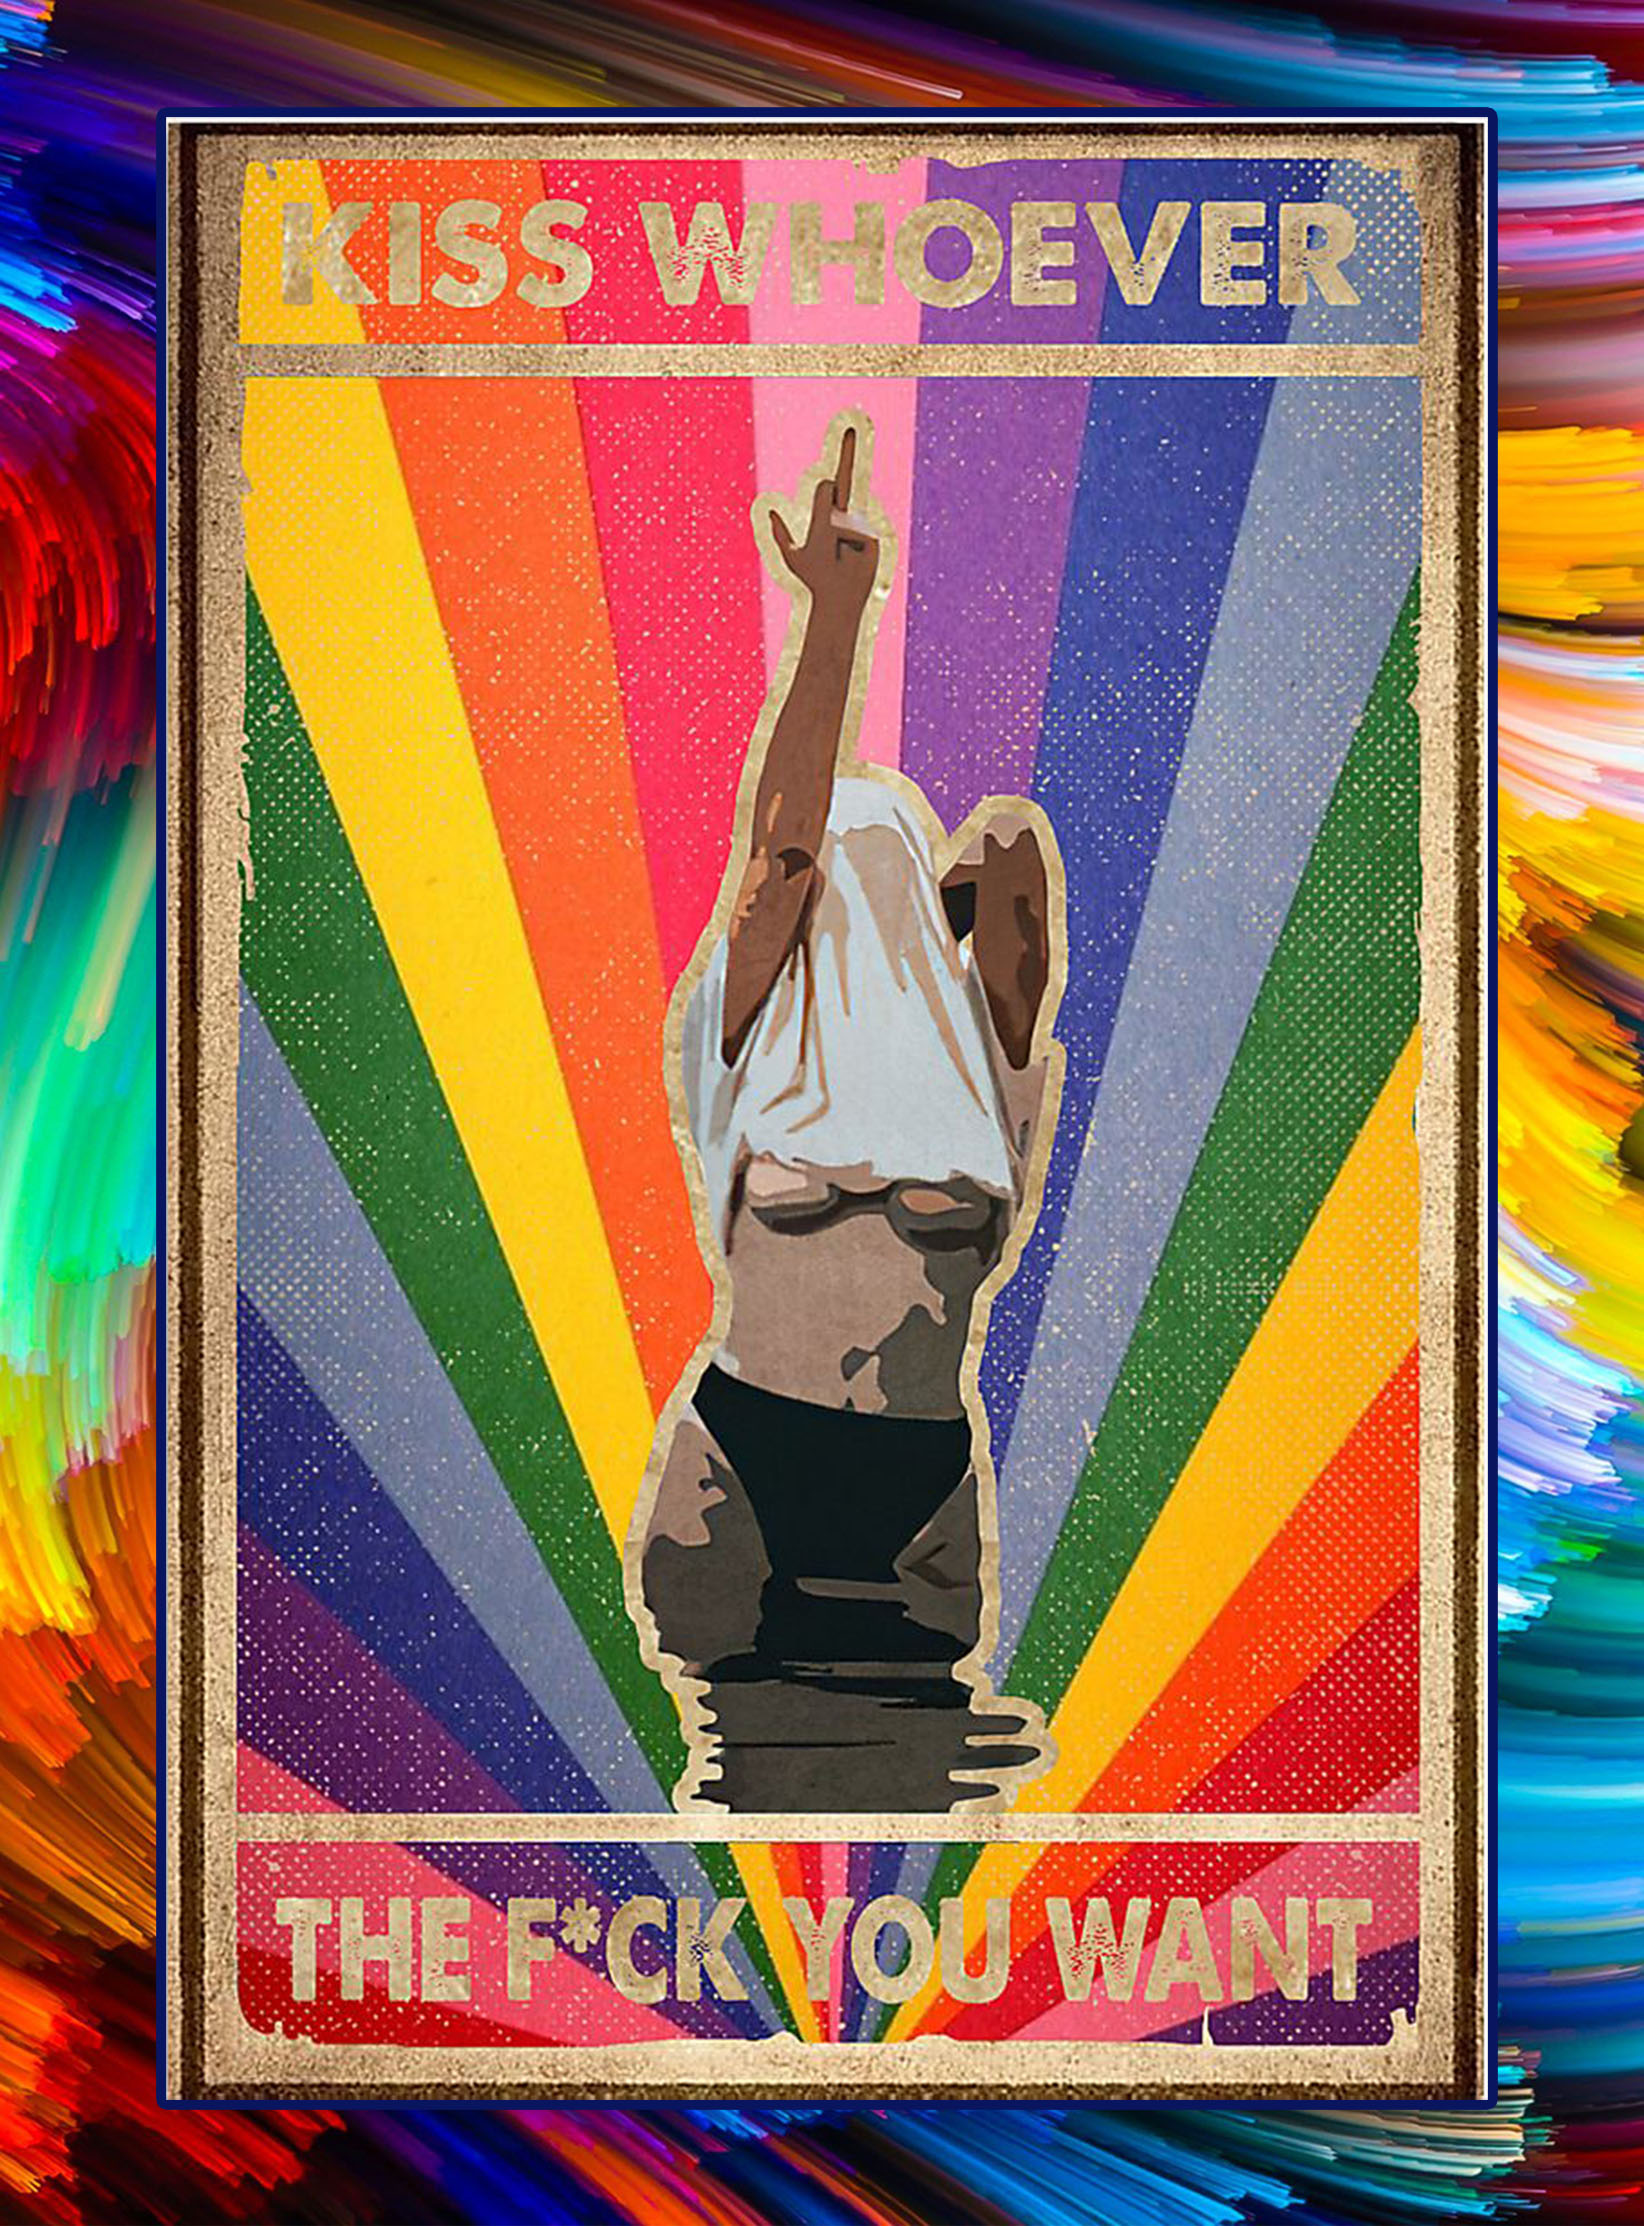 Lgbt pride kiss whoever the fuck you want poster - A1